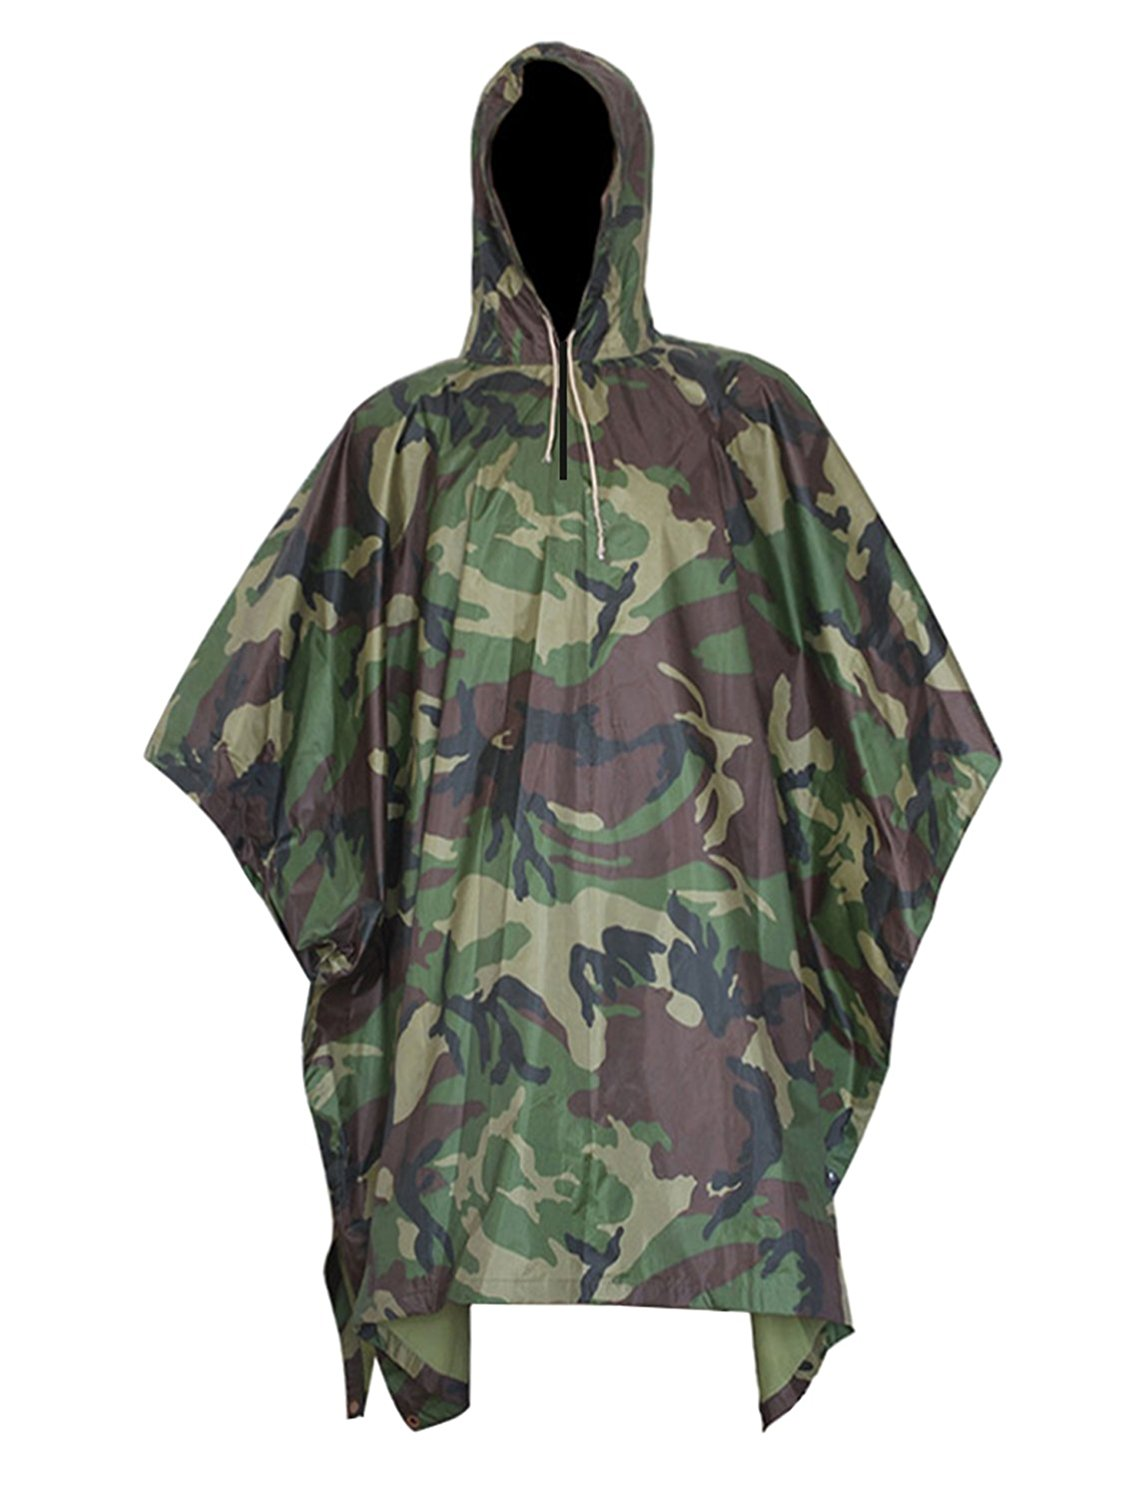 HOWON Military Multifunction Realtree Camouflage Waterproof Rain Poncho For Adults(Gift Emergency Blanket) by